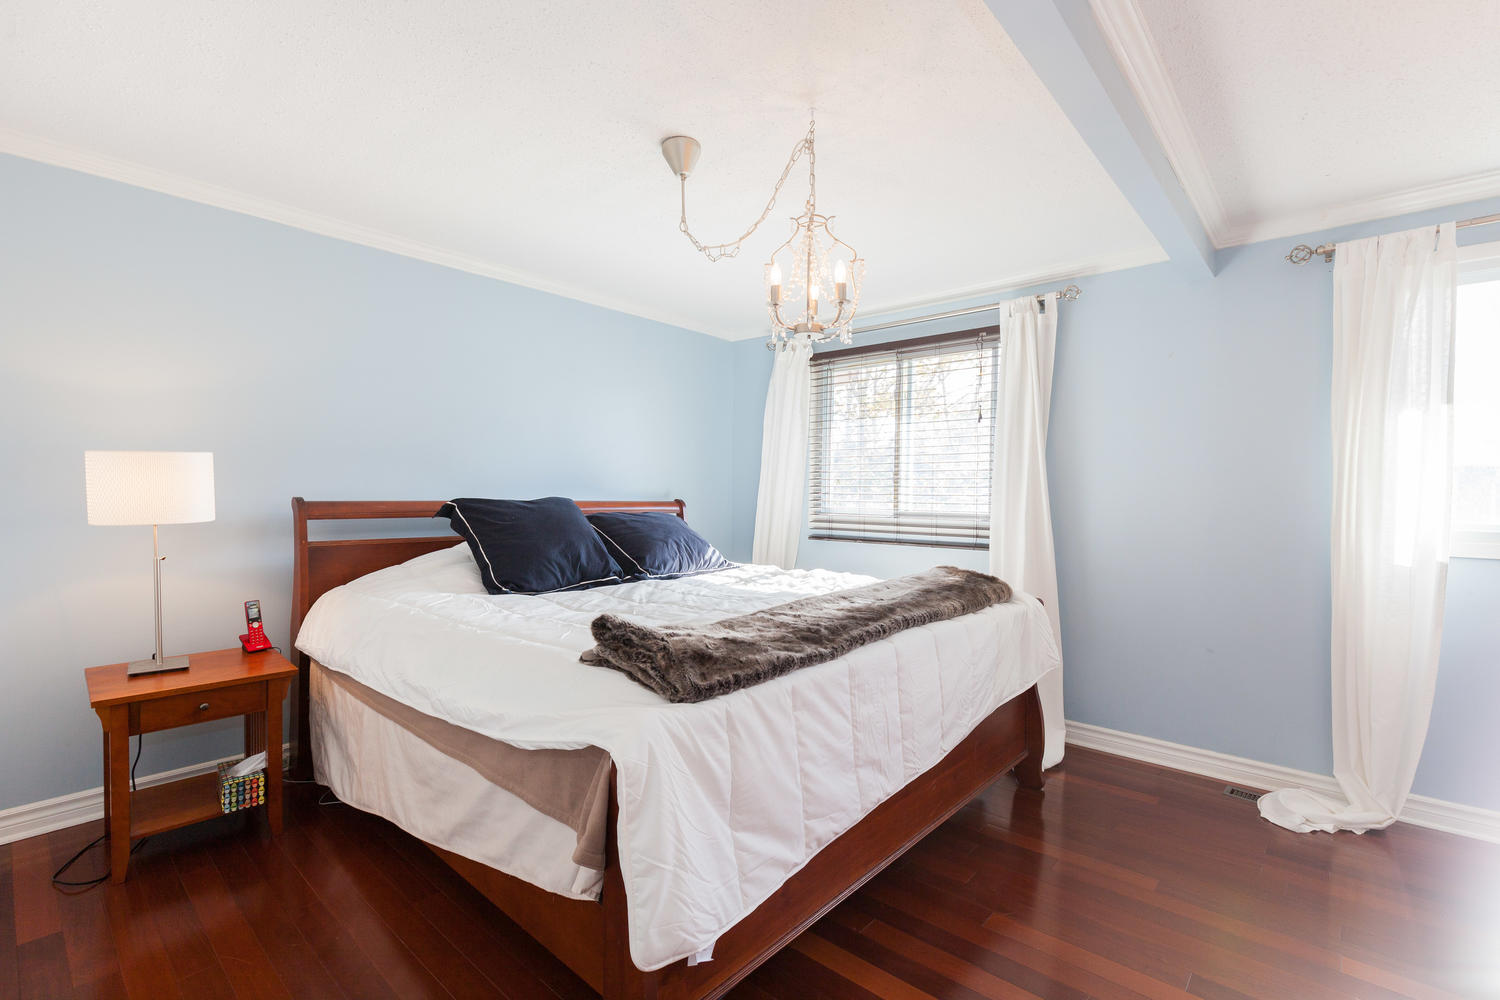 This sun-filled and airy bedroom boasts serenity. Nothing like a relaxing atmosphere!